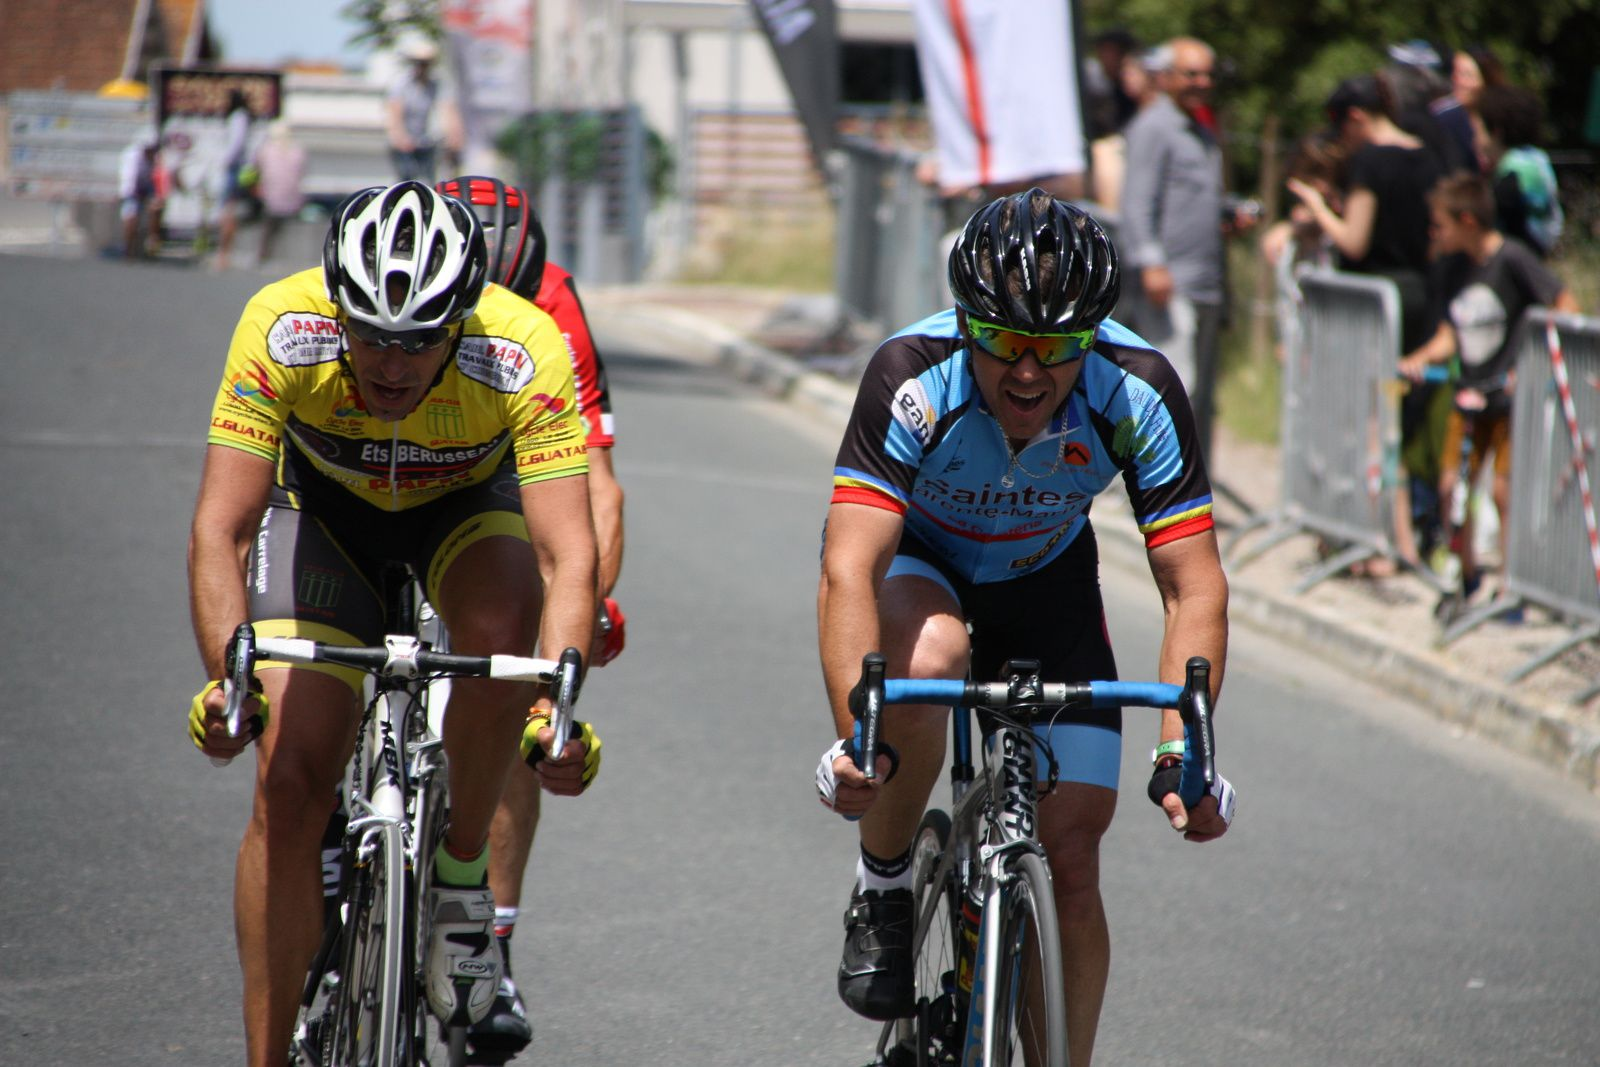 Les  3  coureurs  tentent  dec  faire  le  break